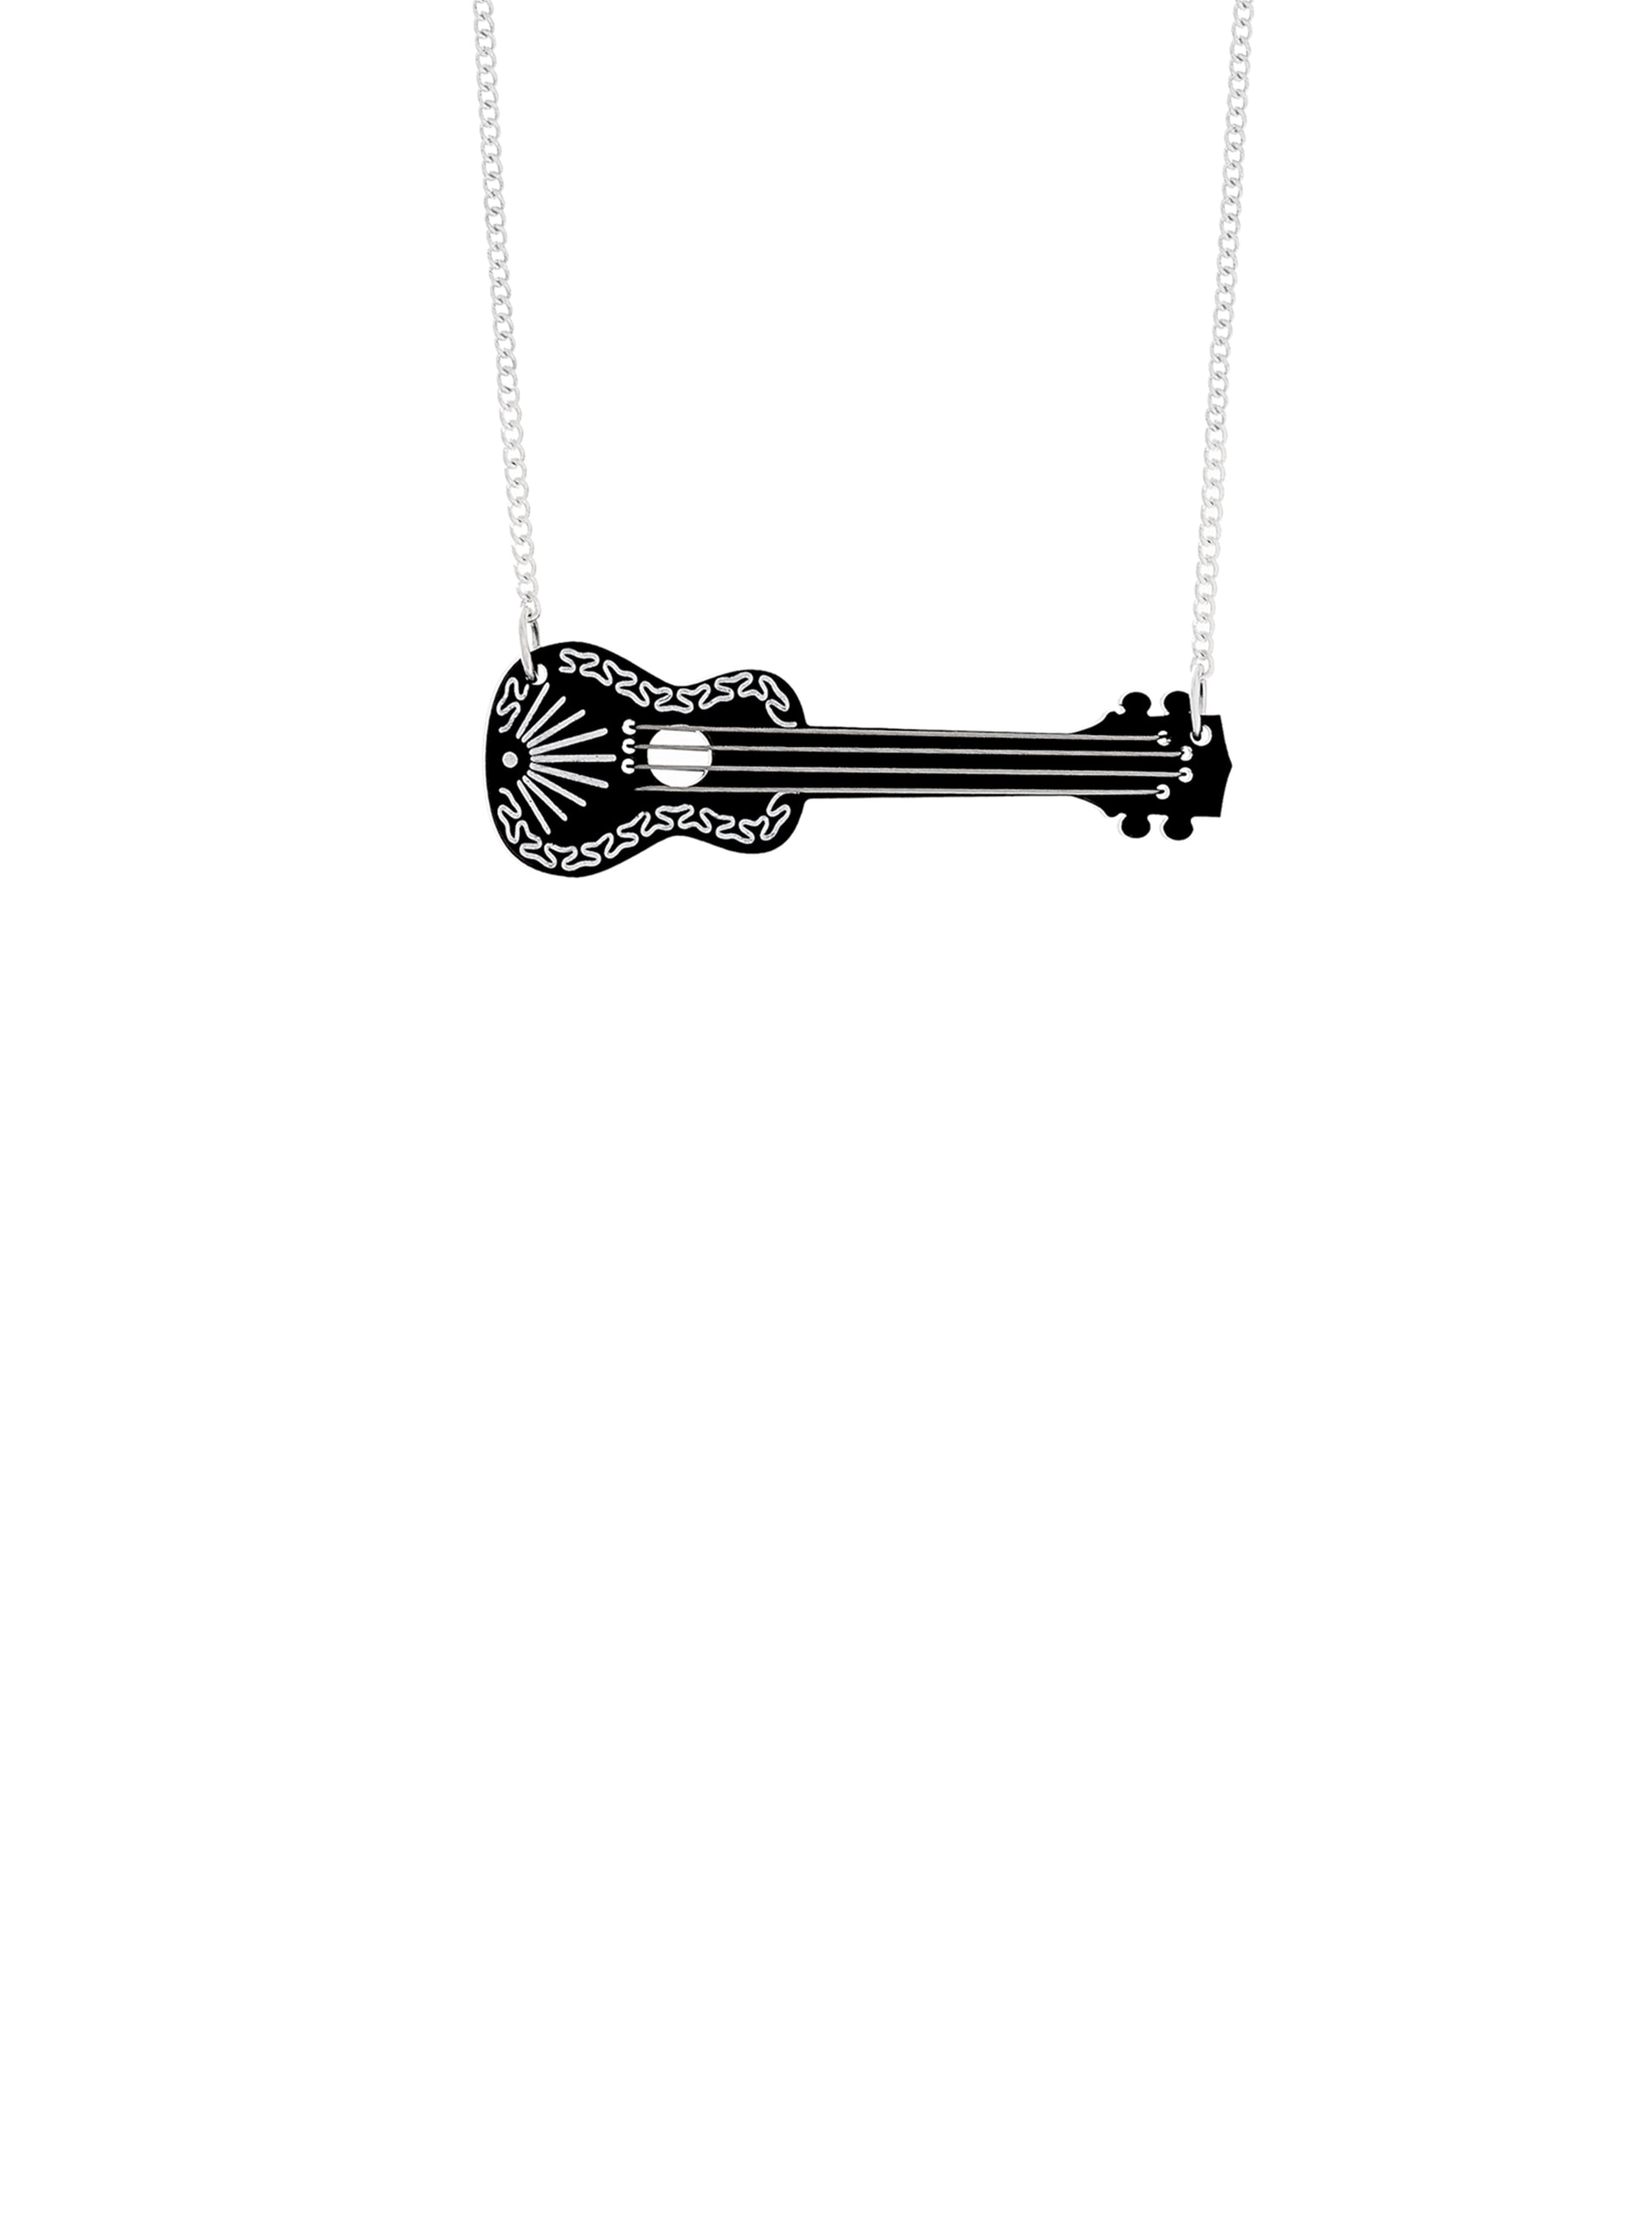 Milagro Guitar Necklace